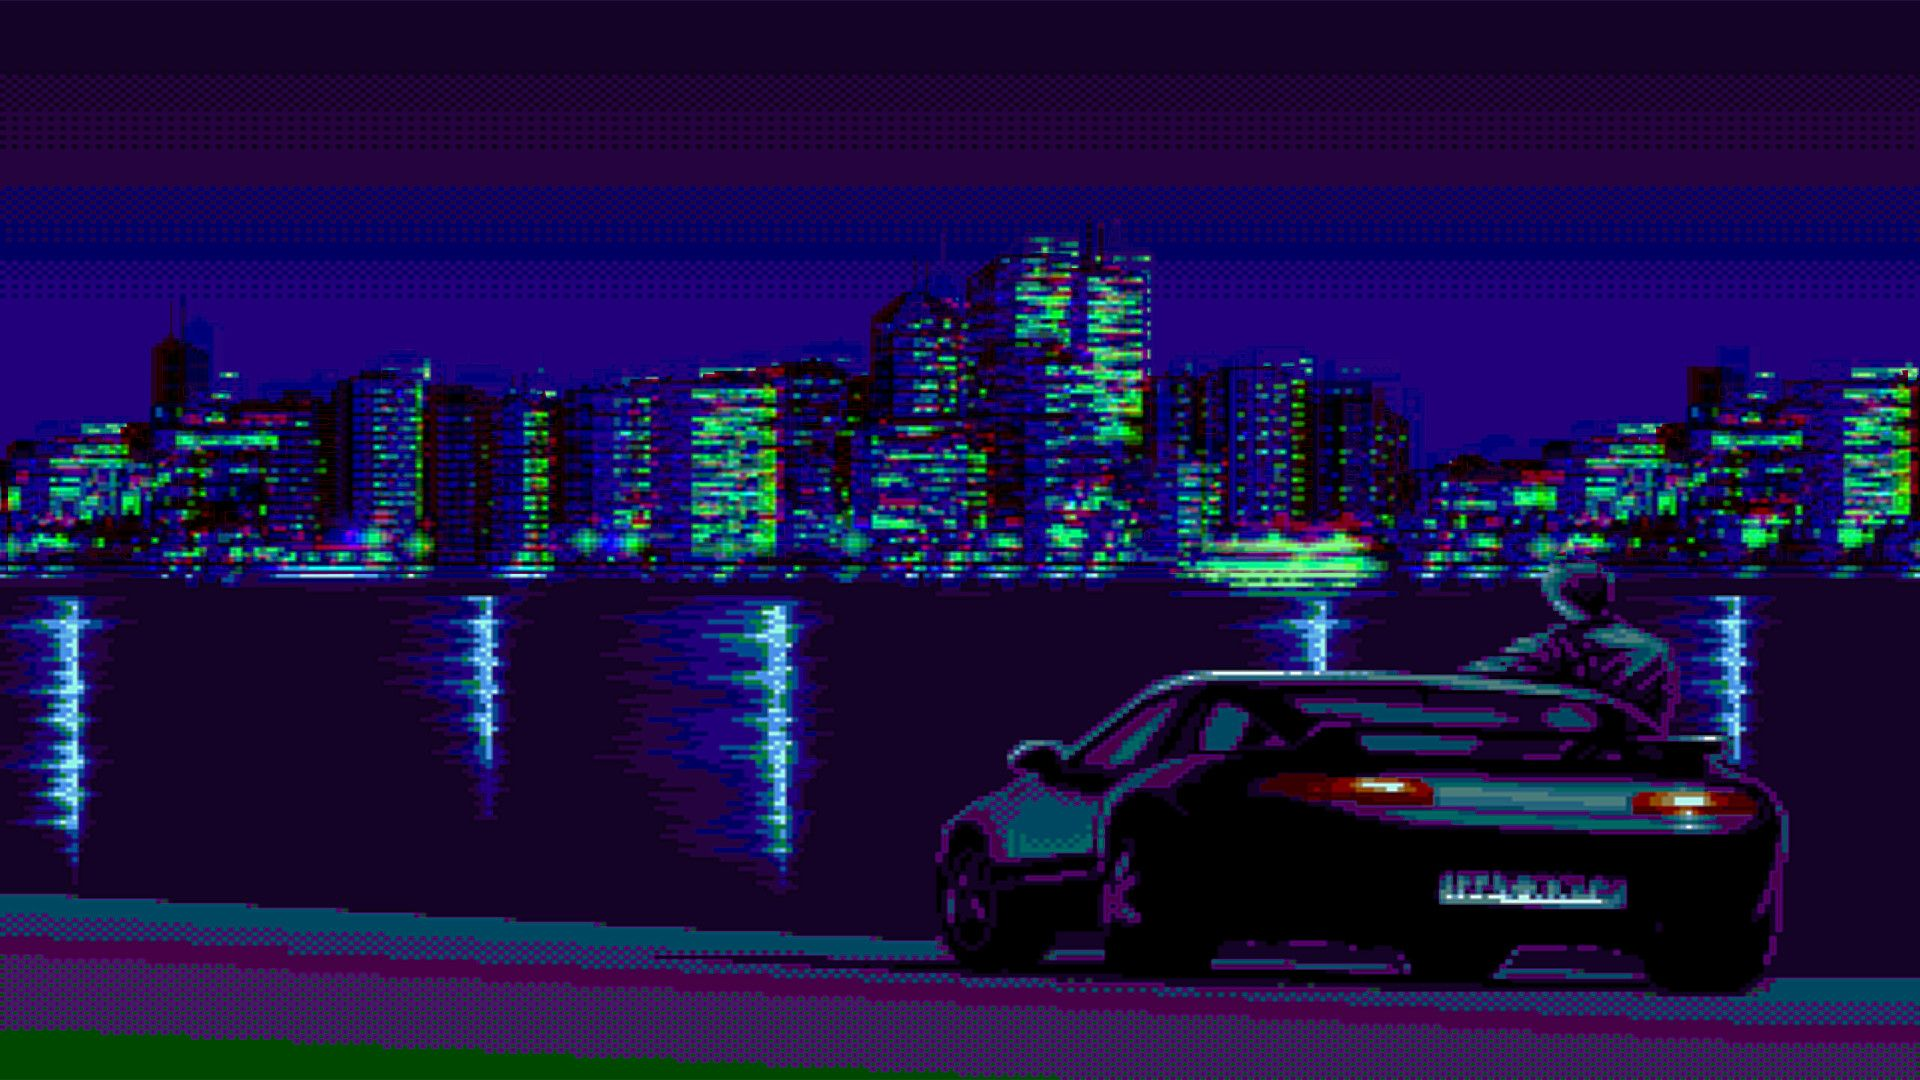 Japanese Aesthetic Computer Wallpapers Top Free Japanese